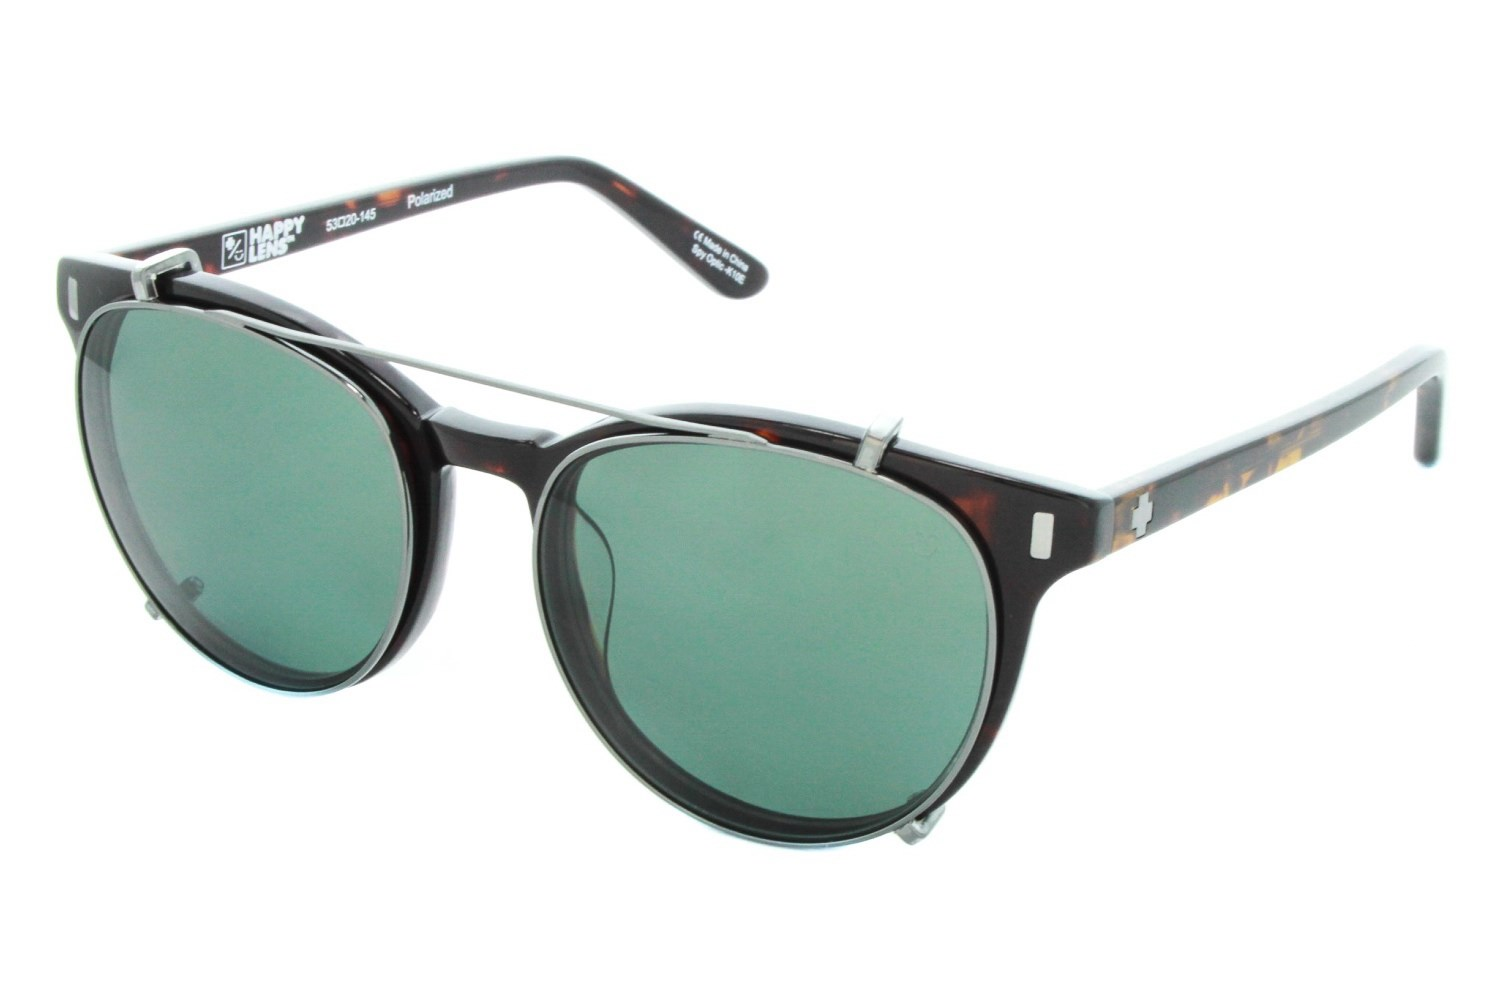 36e9030074 ... UPC 648478753747 product image for Spy Crosstown Collection Alcatraz  Polarized Clip-On